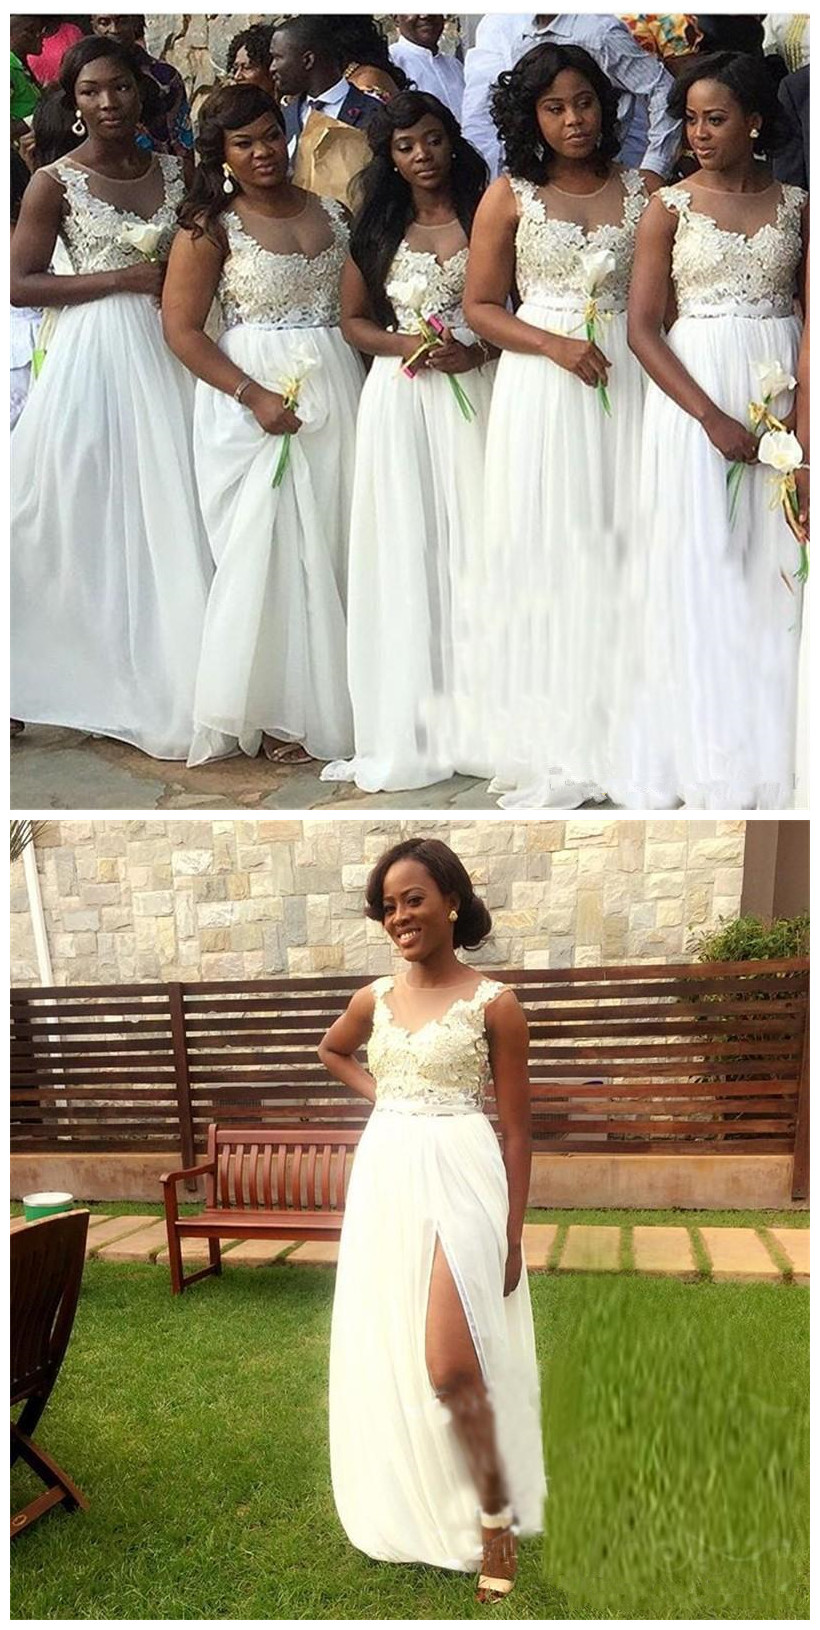 White Bridesmaid Dresses For South African Black Girls New ...